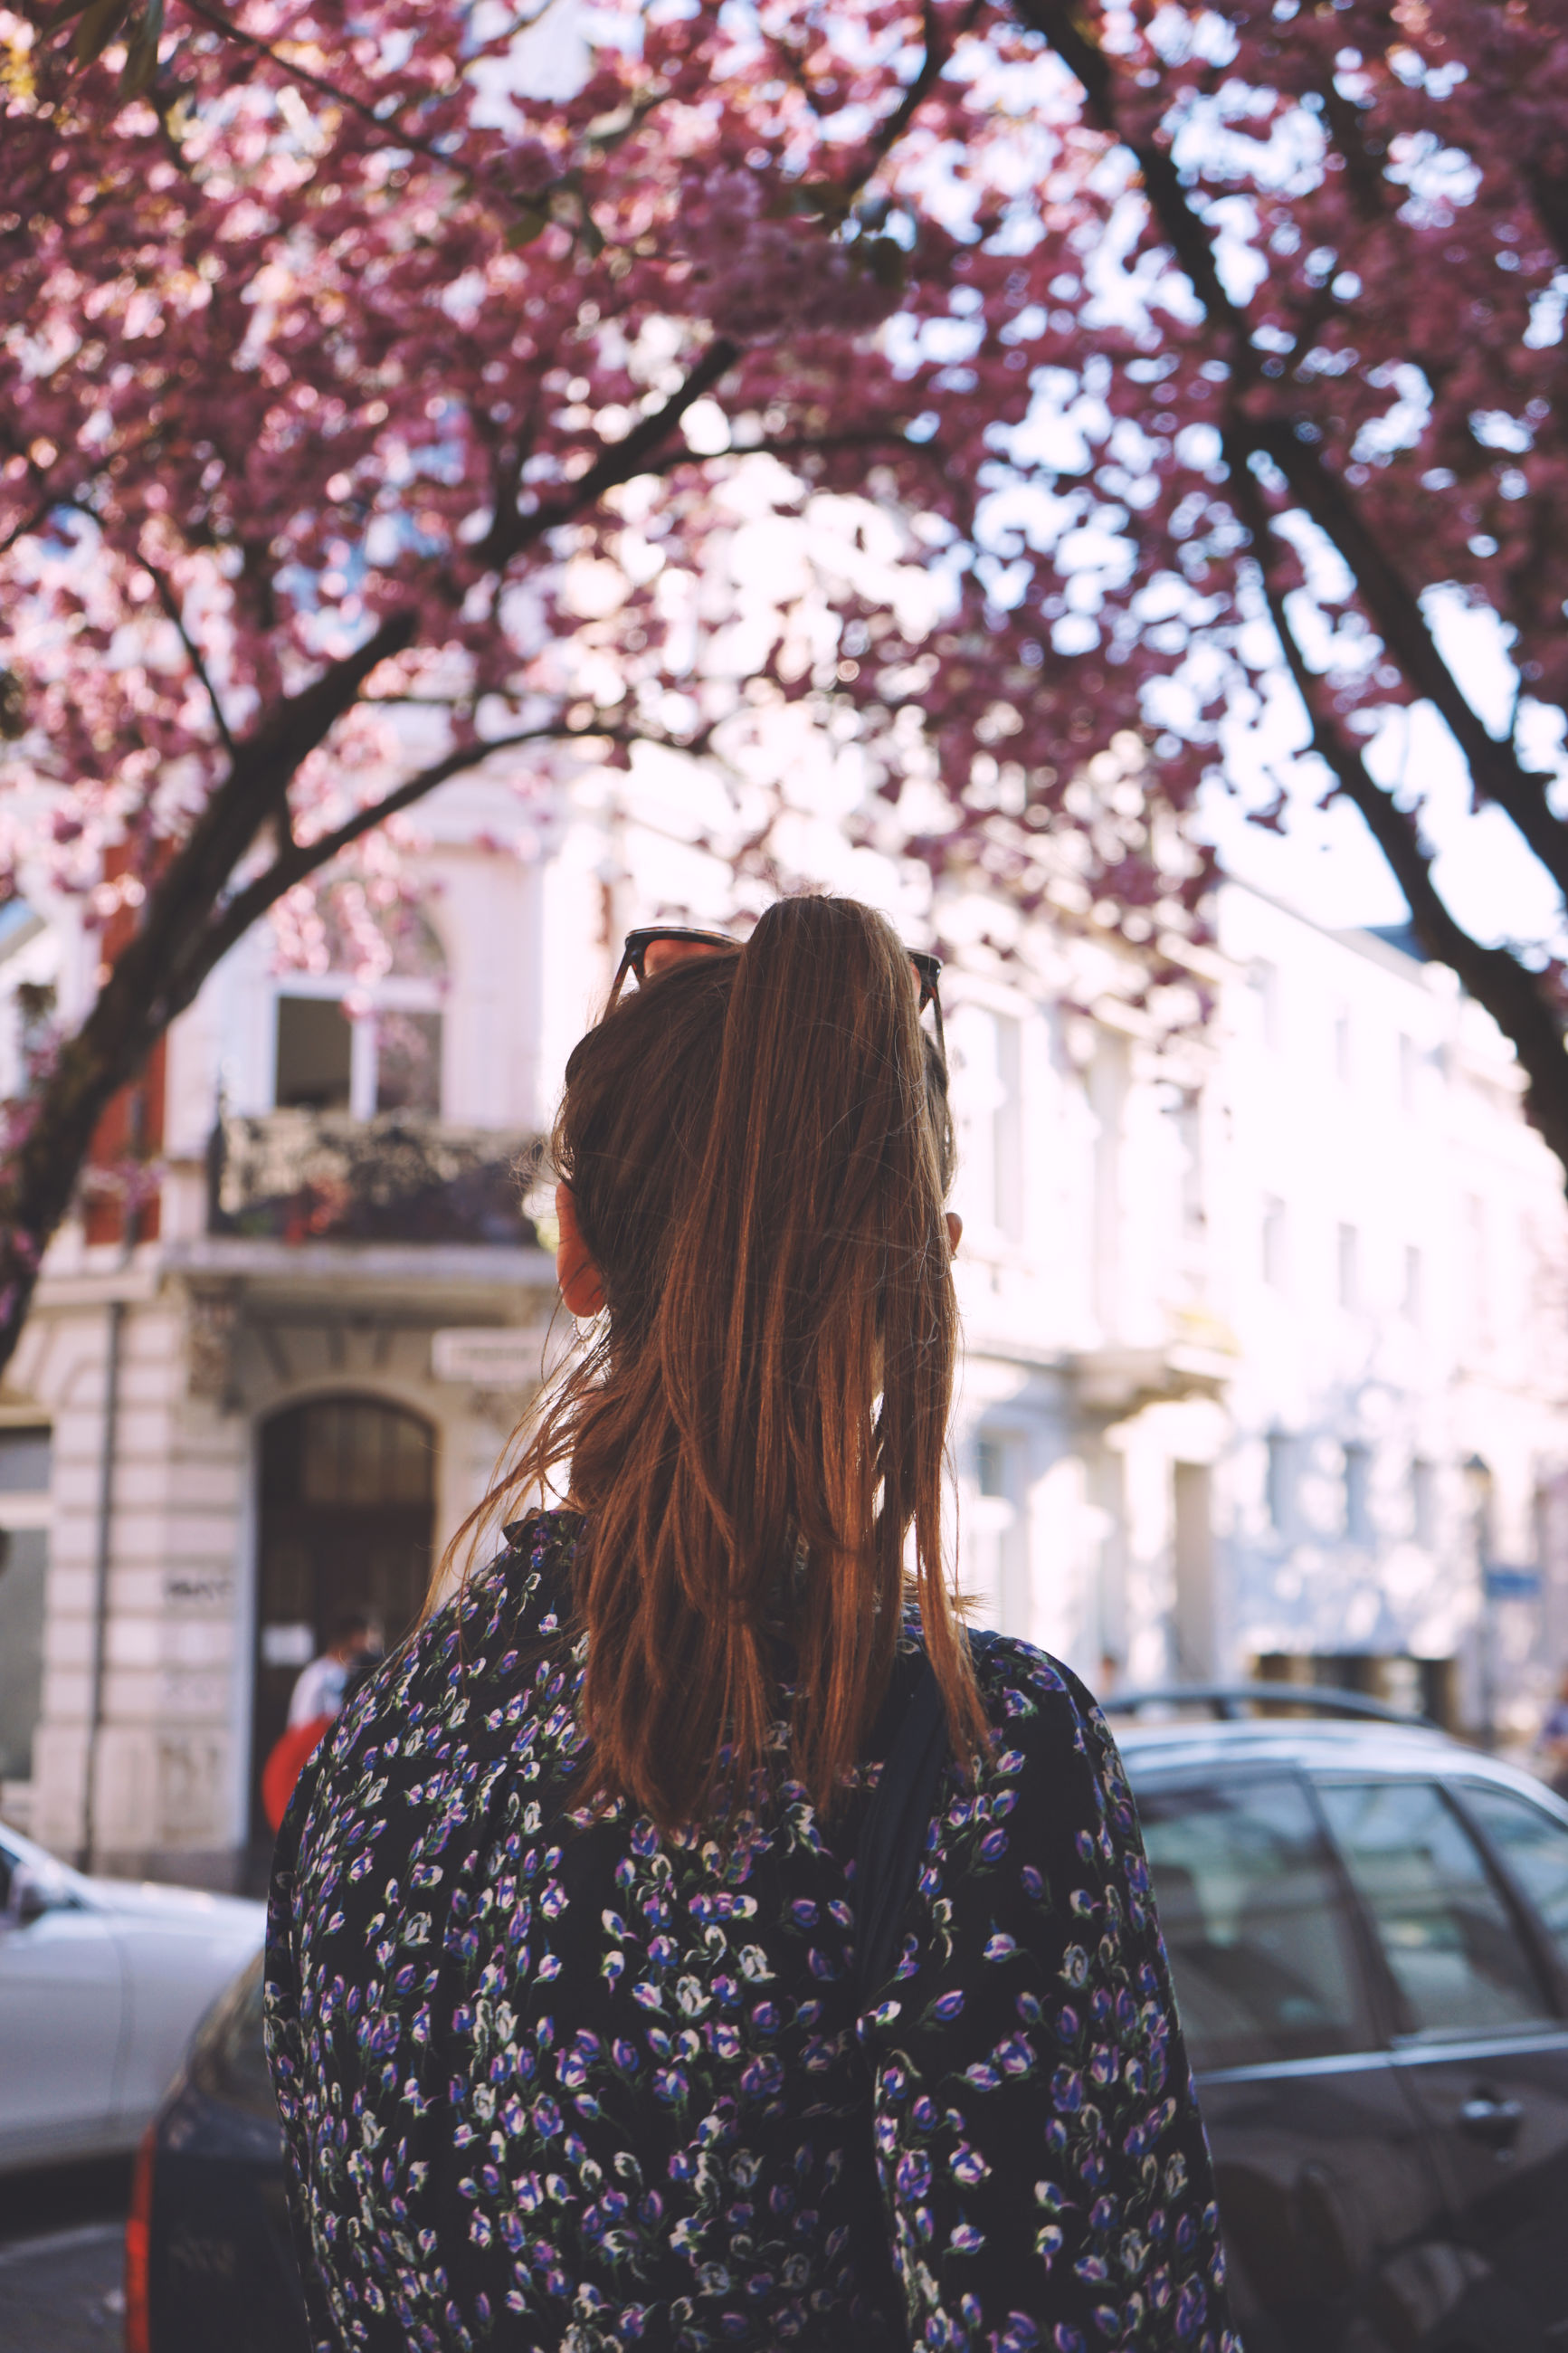 hairstyle, one person, long hair, lifestyles, tree, motor vehicle, plant, architecture, mode of transportation, real people, car, transportation, women, nature, city, day, building exterior, focus on foreground, built structure, hair, outdoors, cherry blossom, springtime, warm clothing